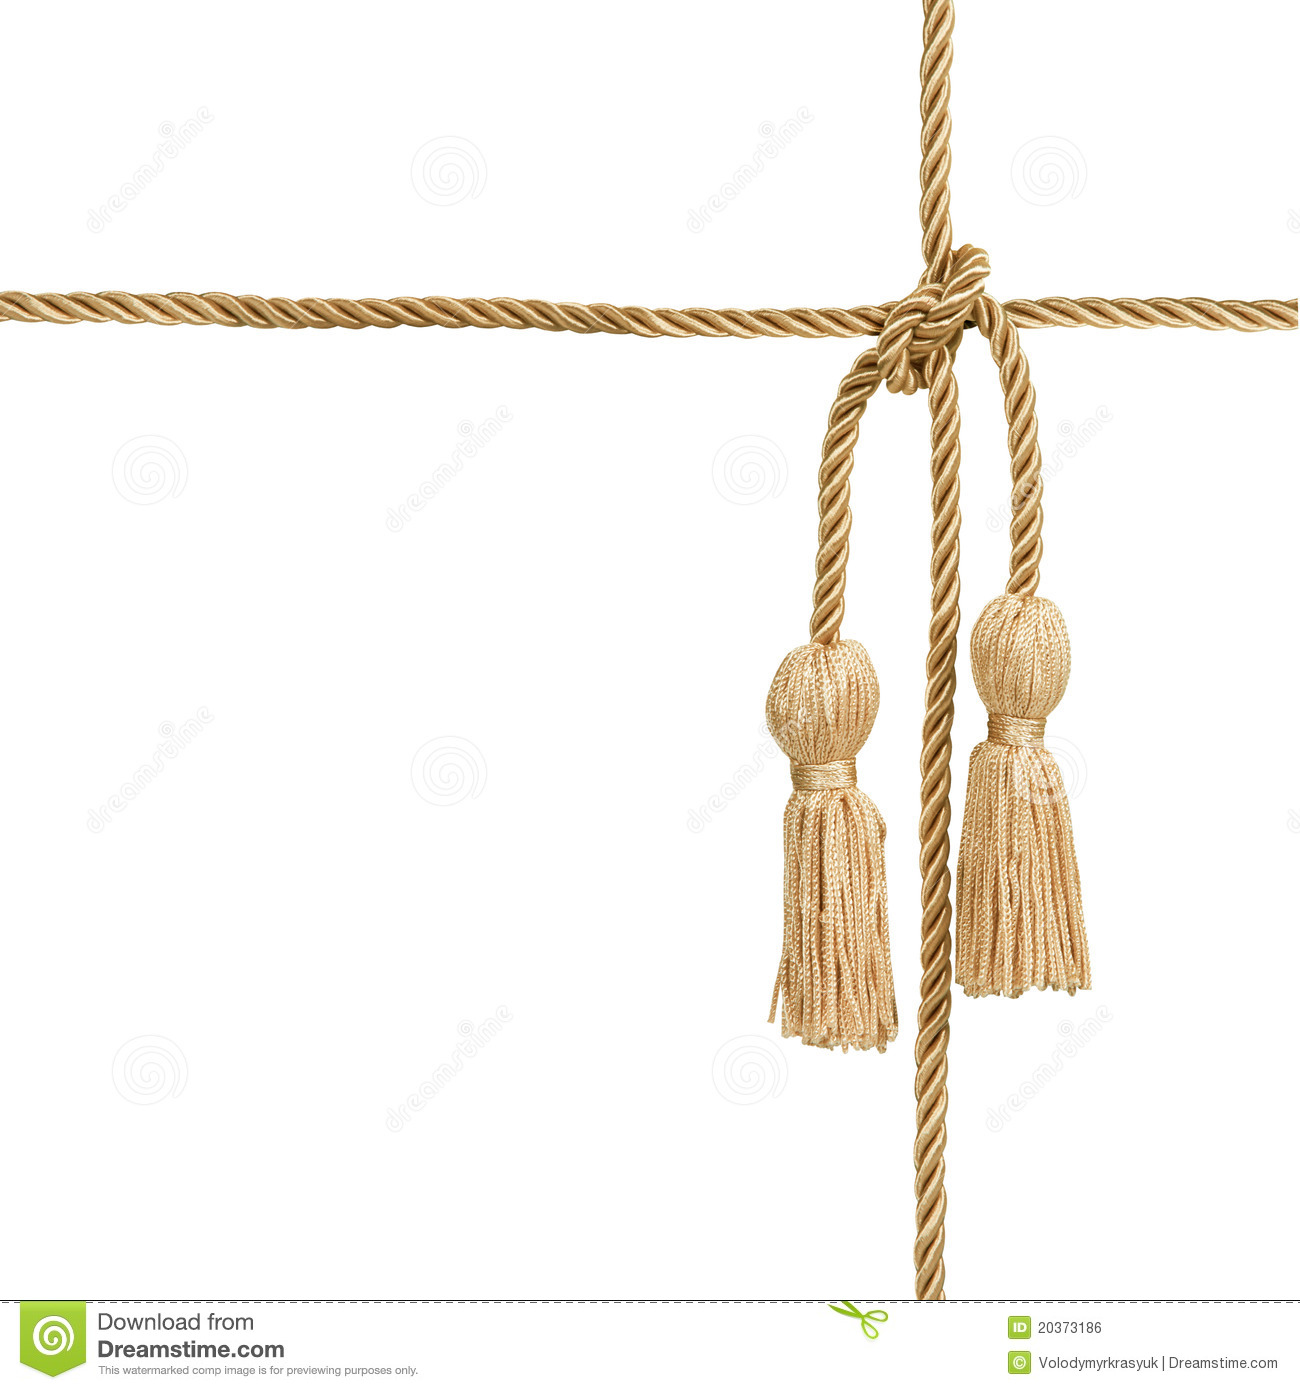 Gold rope with tassel royalty free stock image image for Rope designs and more